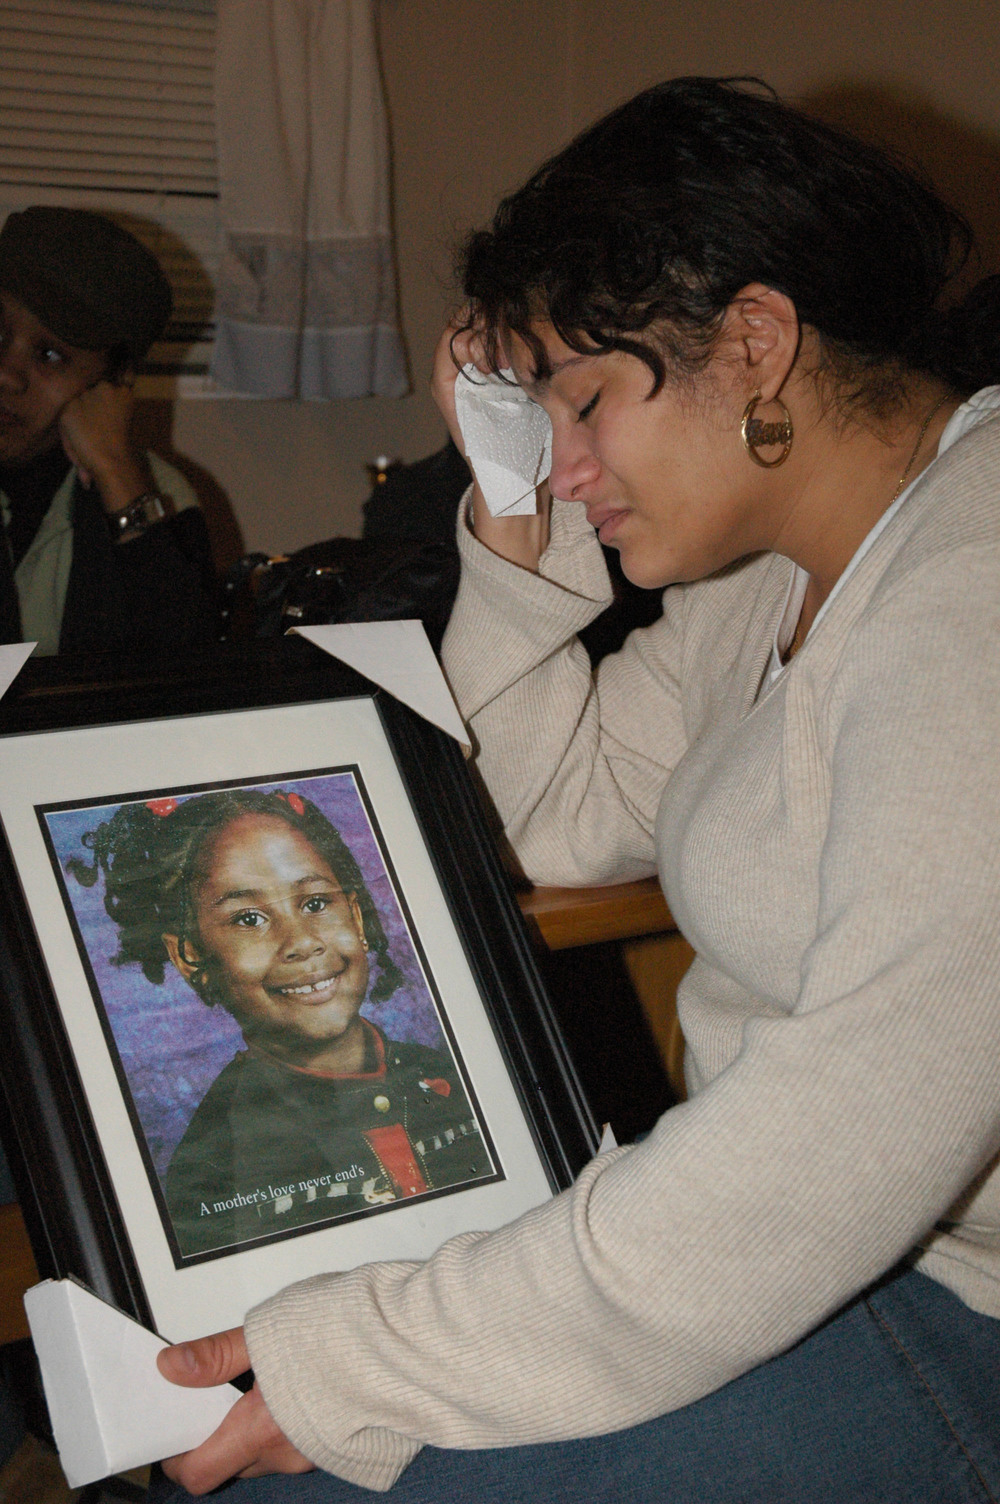 01.29.05 Newburgh, NY Lisa Mason holds a photo of her daughter.jpg